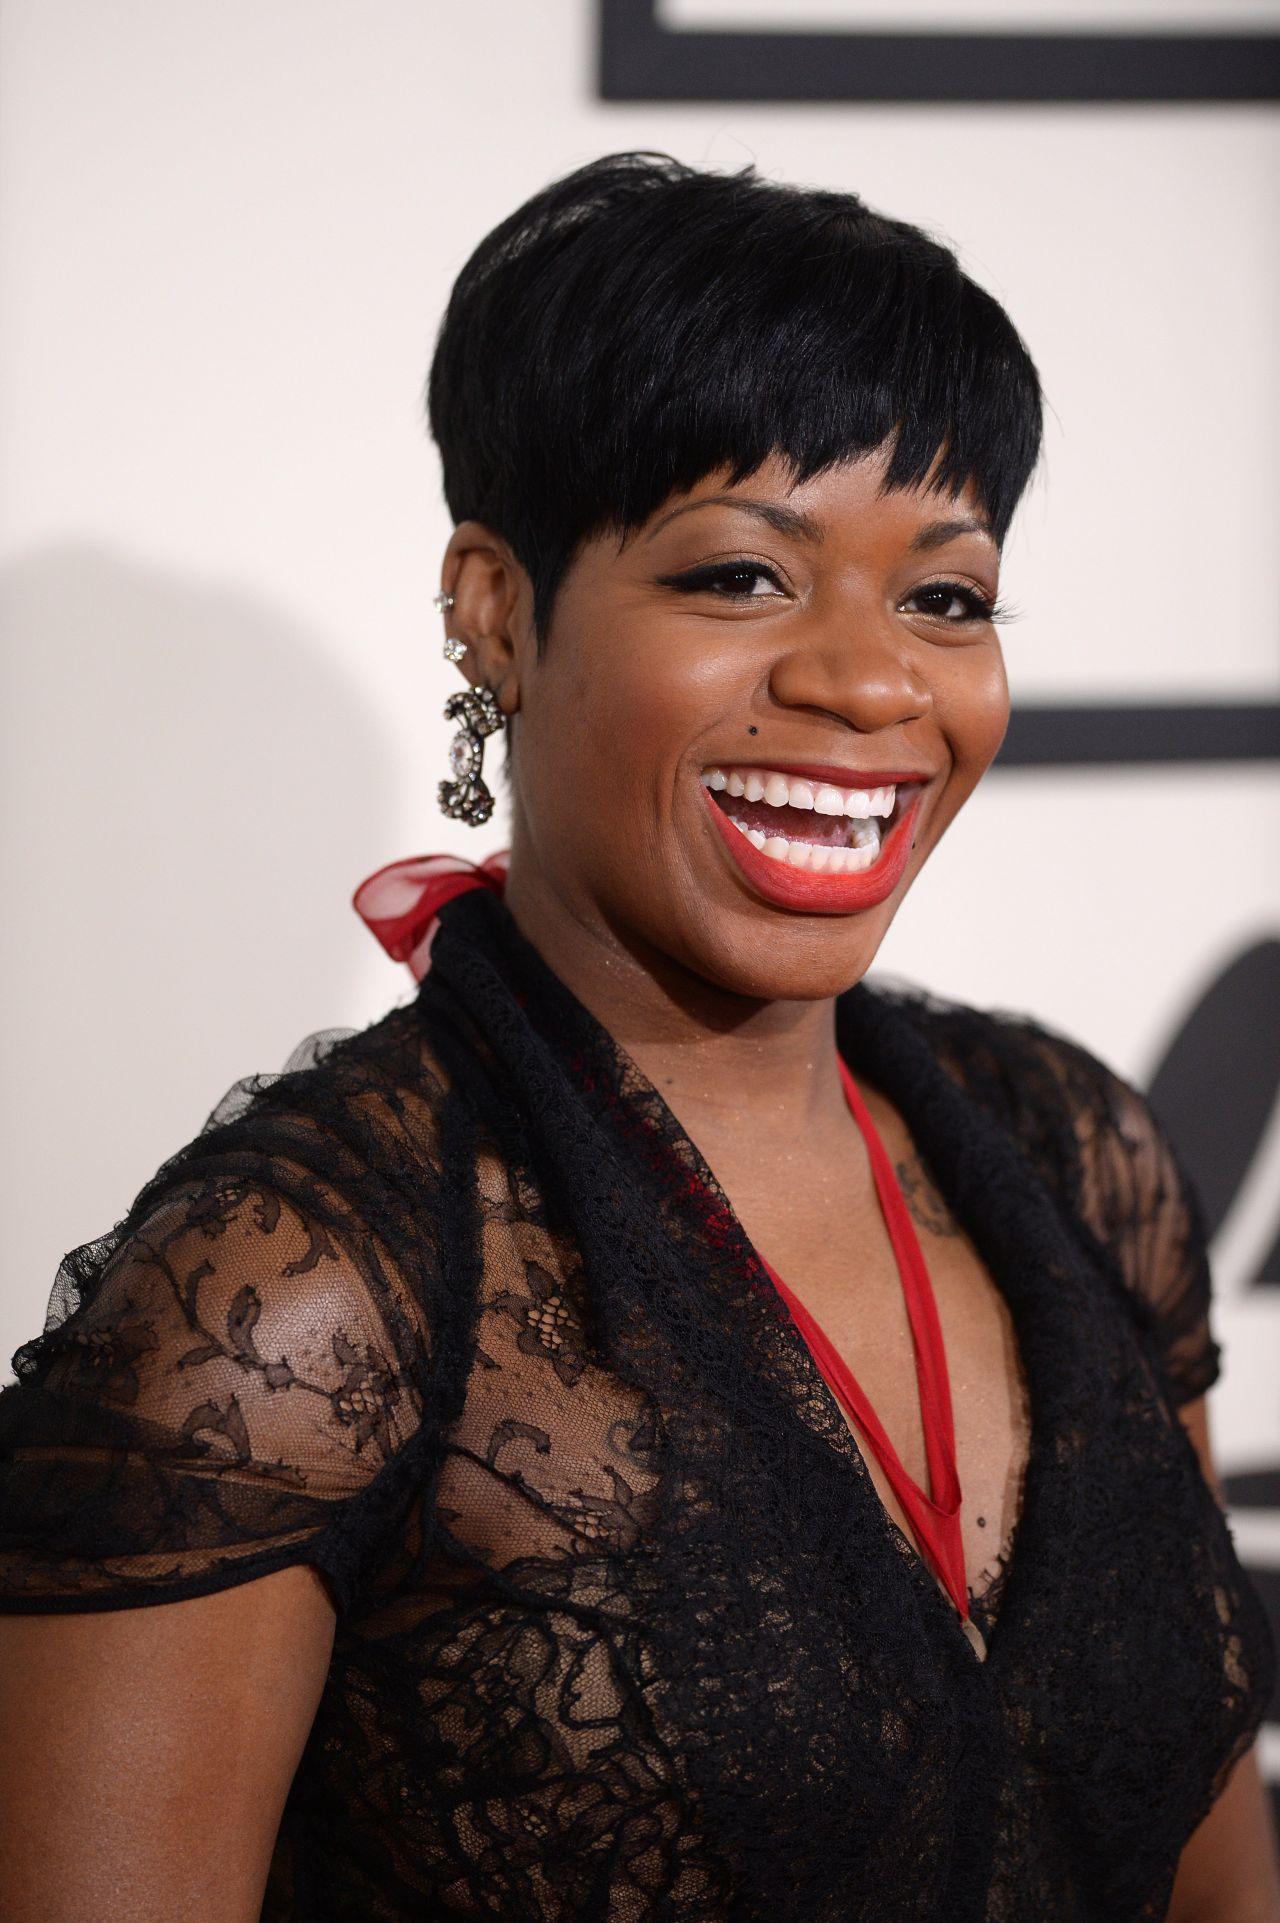 Check Out Fantasia Barrino in Front of a Lavish Car with